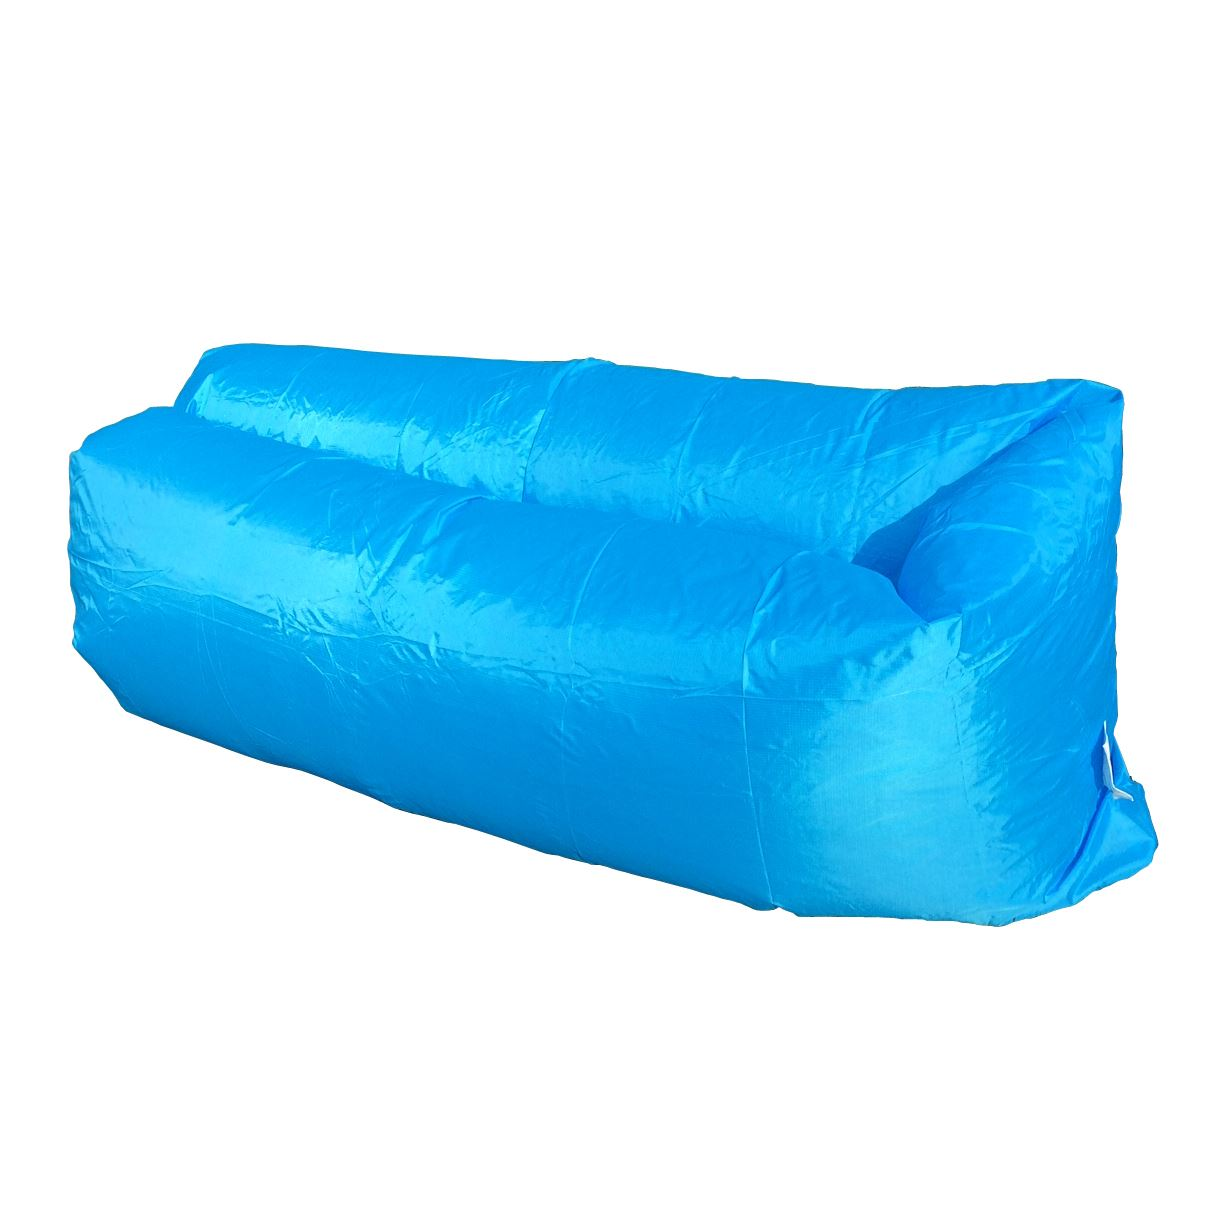 camping sofa uk high quality leather sectional sofas ultimo inflatable chair air bed luxury seat